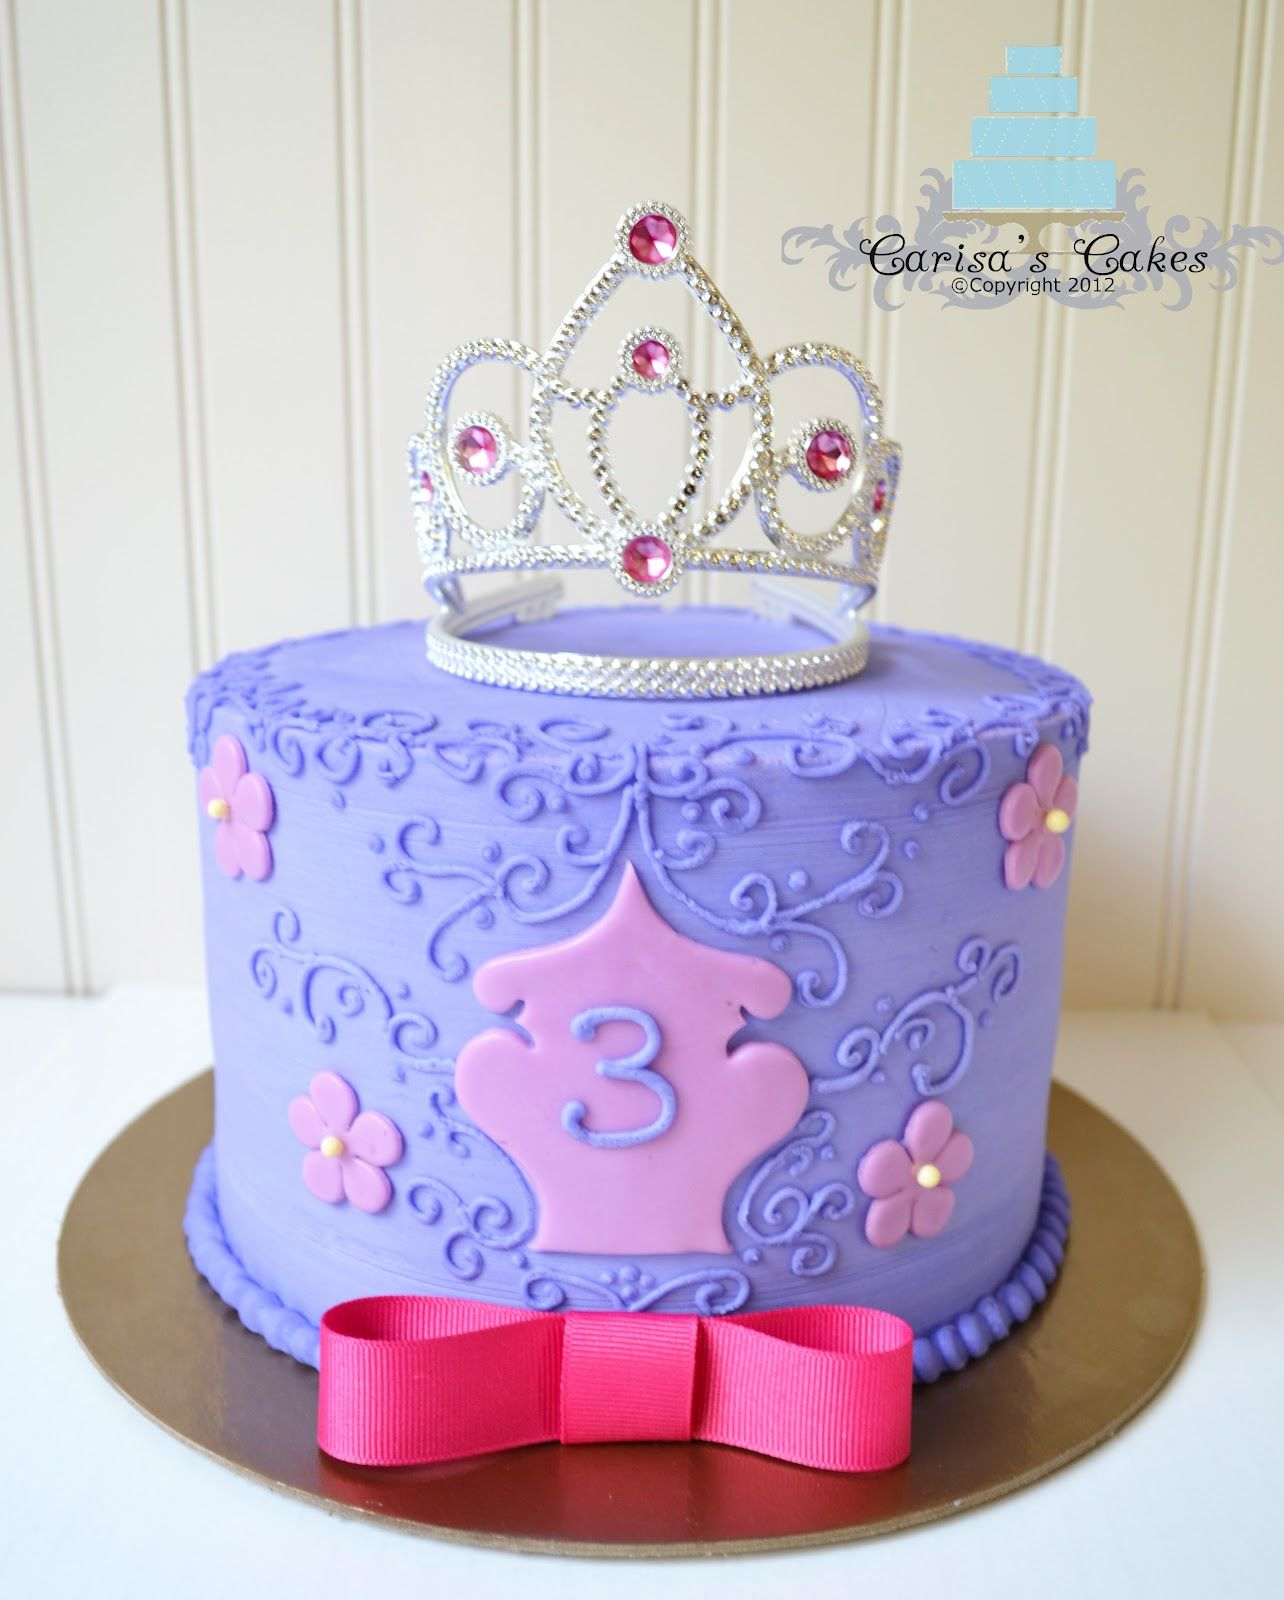 Walmart Bakery Birthday Cakes Photos Carisas Cakes Princess